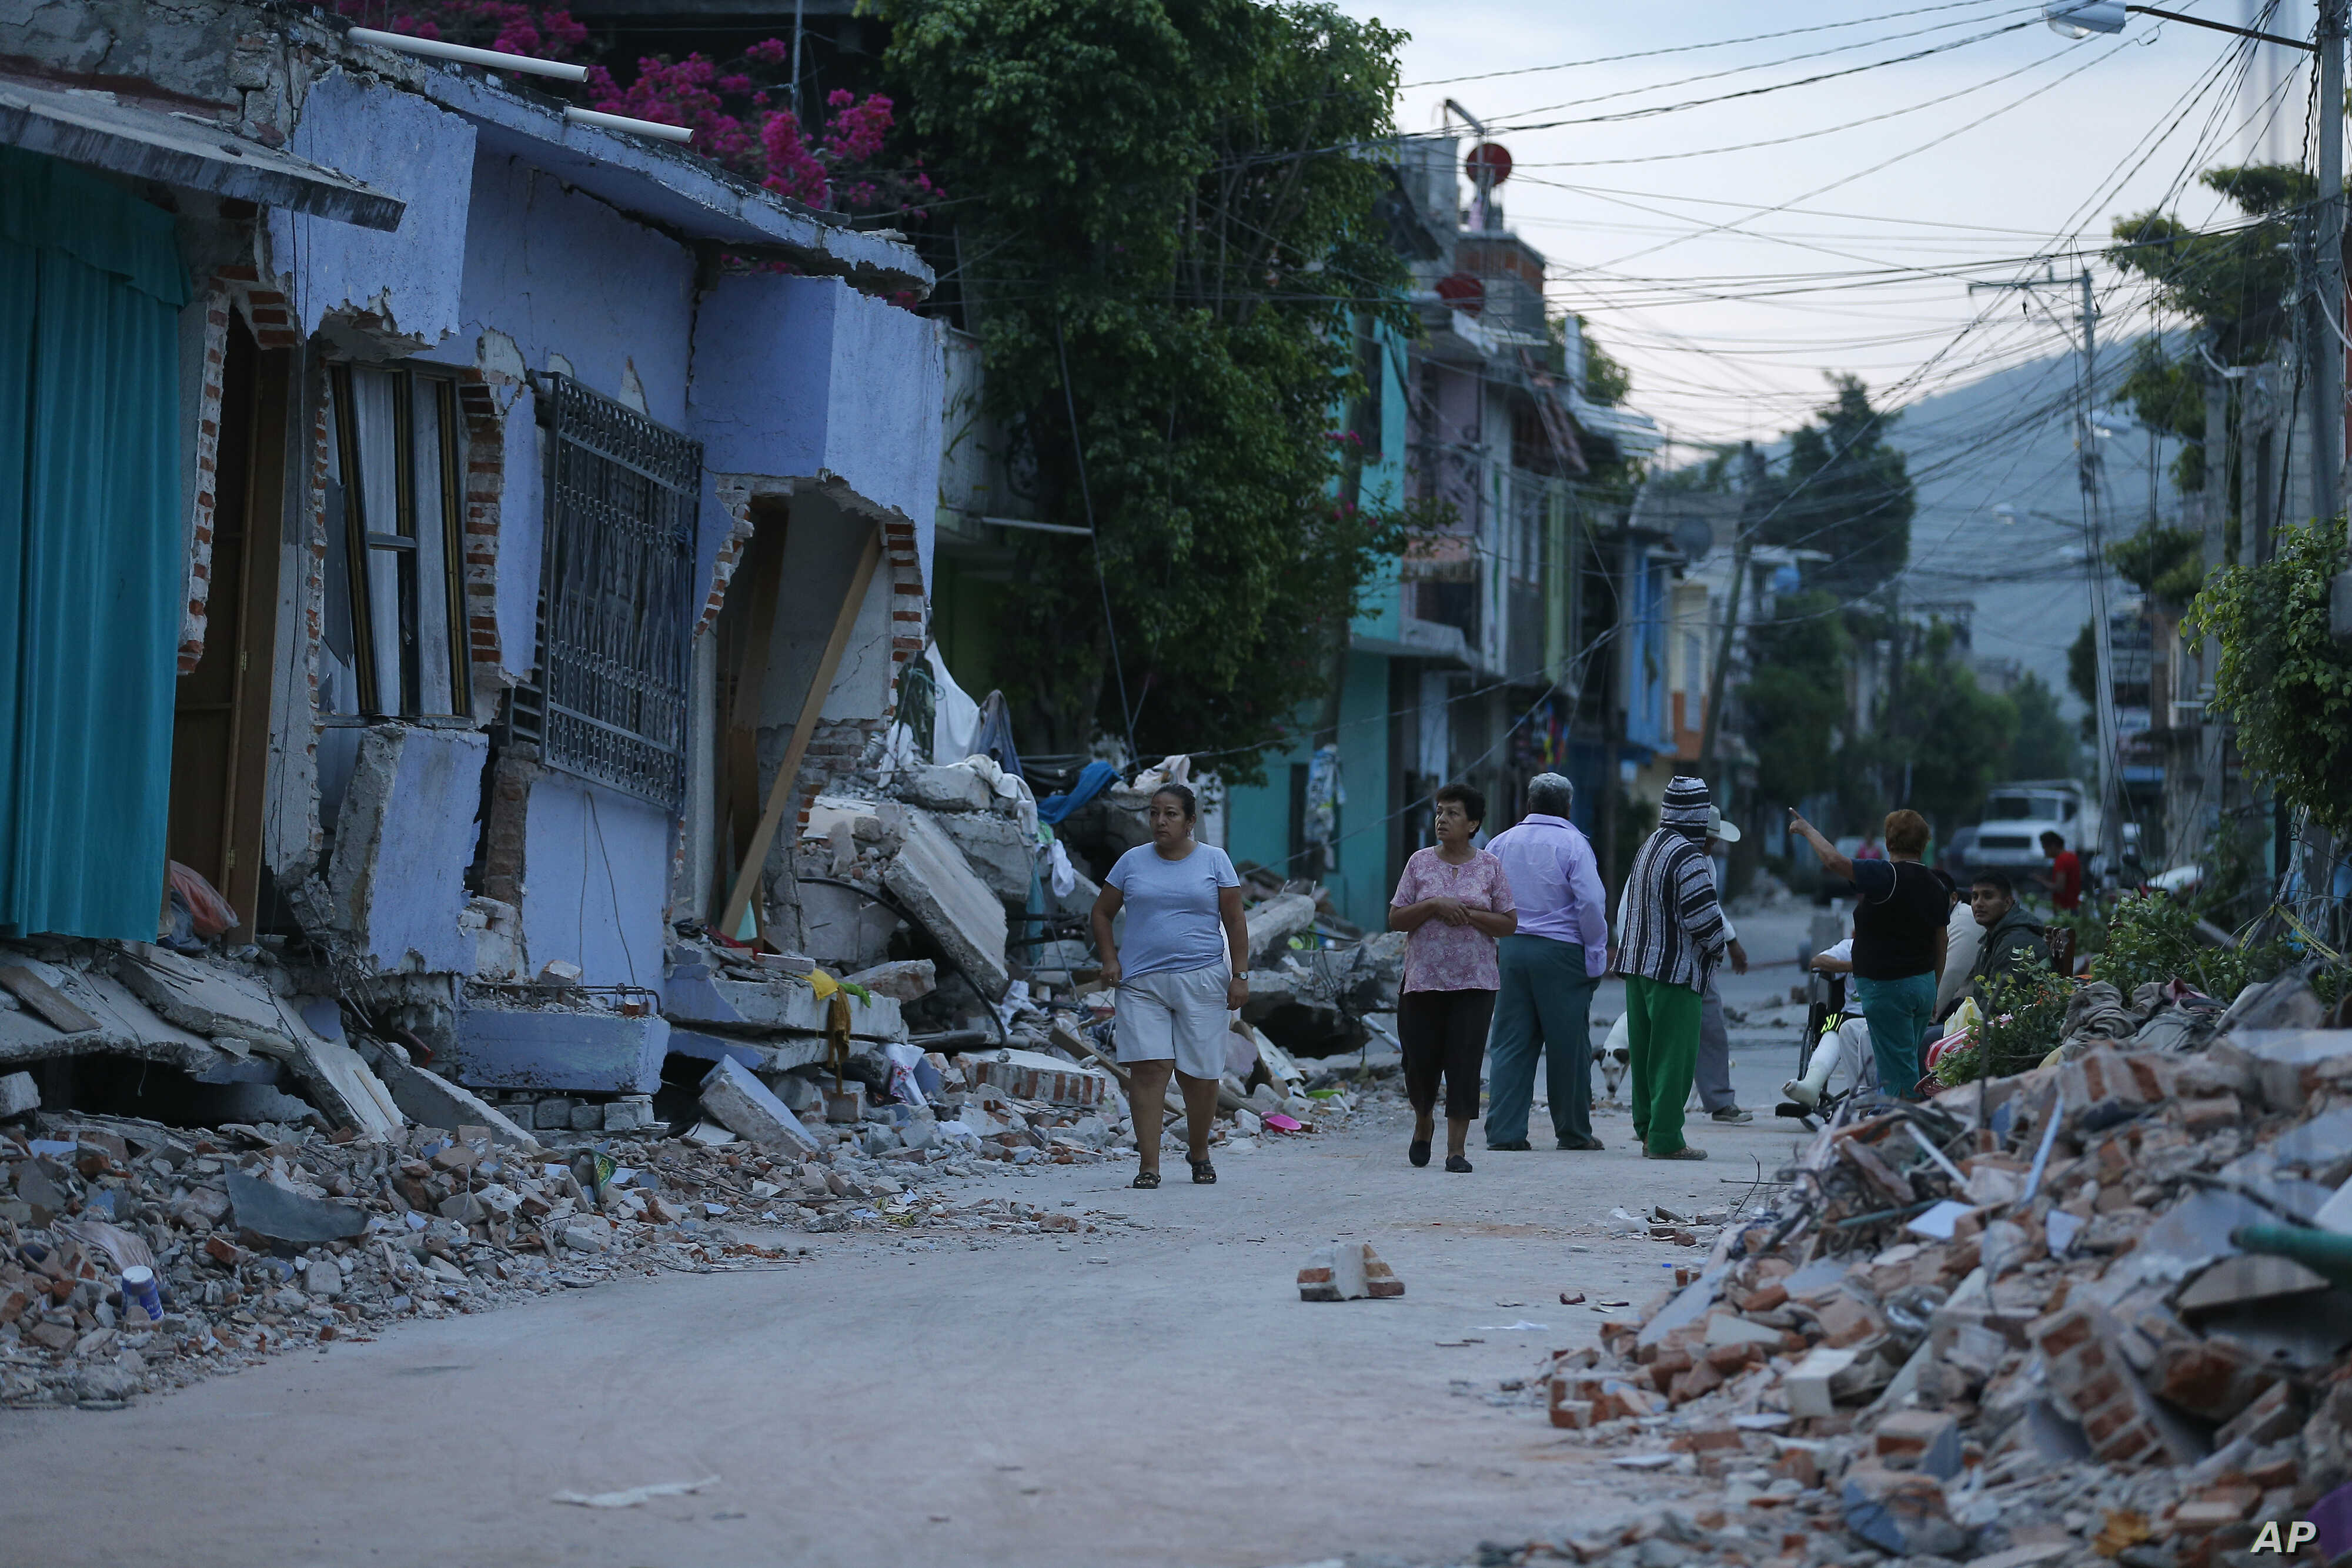 Residents stand next to buildings damaged by a 7.1 earthquake, in Jojutla, Morelos state, Mexico, Sept. 20, 2017.